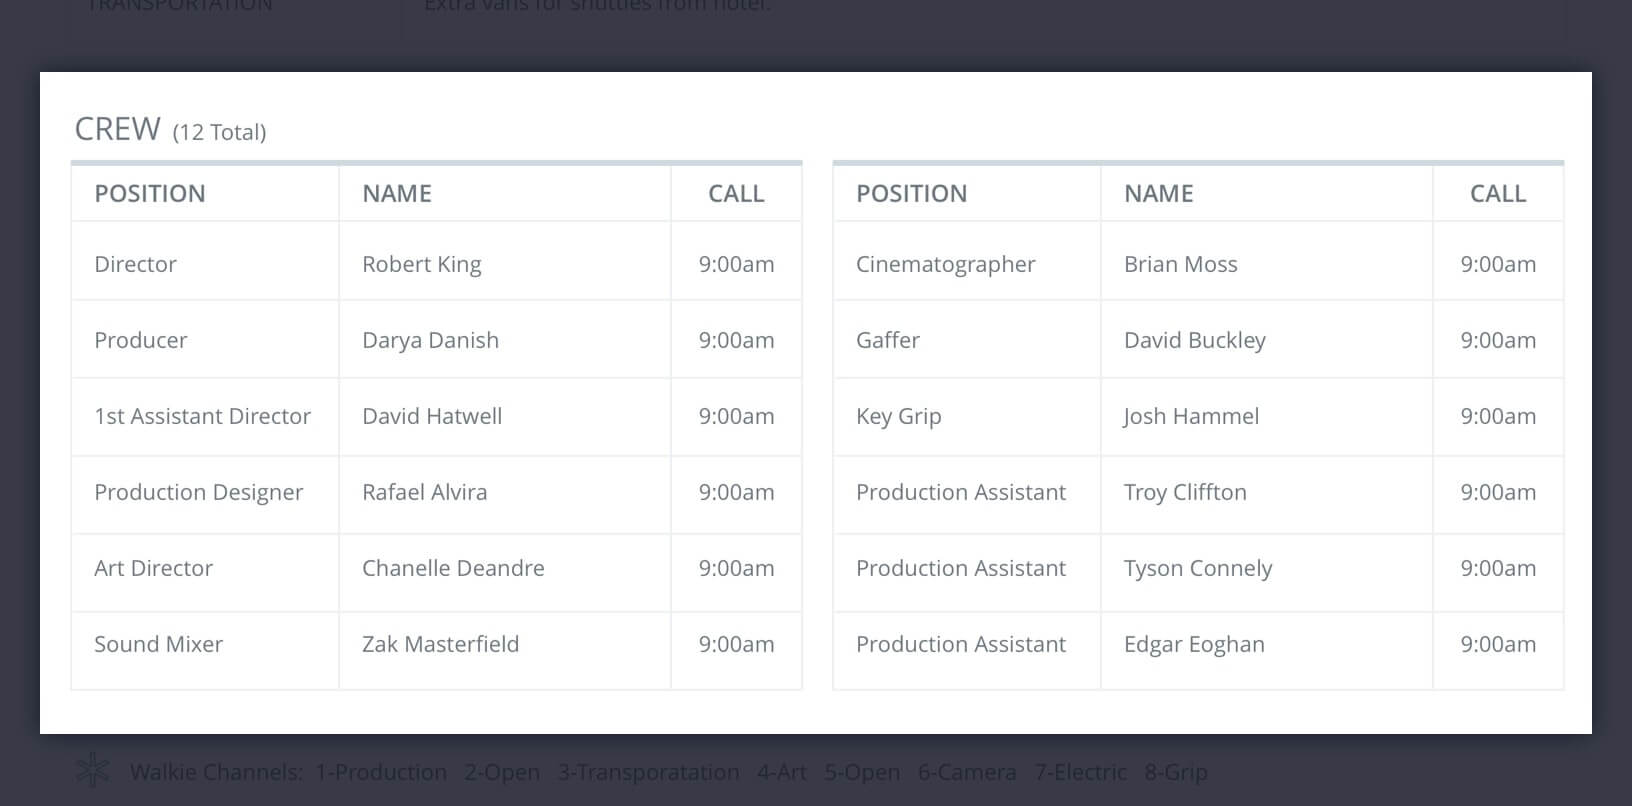 The Anatomy of a Call Sheet: How to Make a Call Sheet for Film and Tv